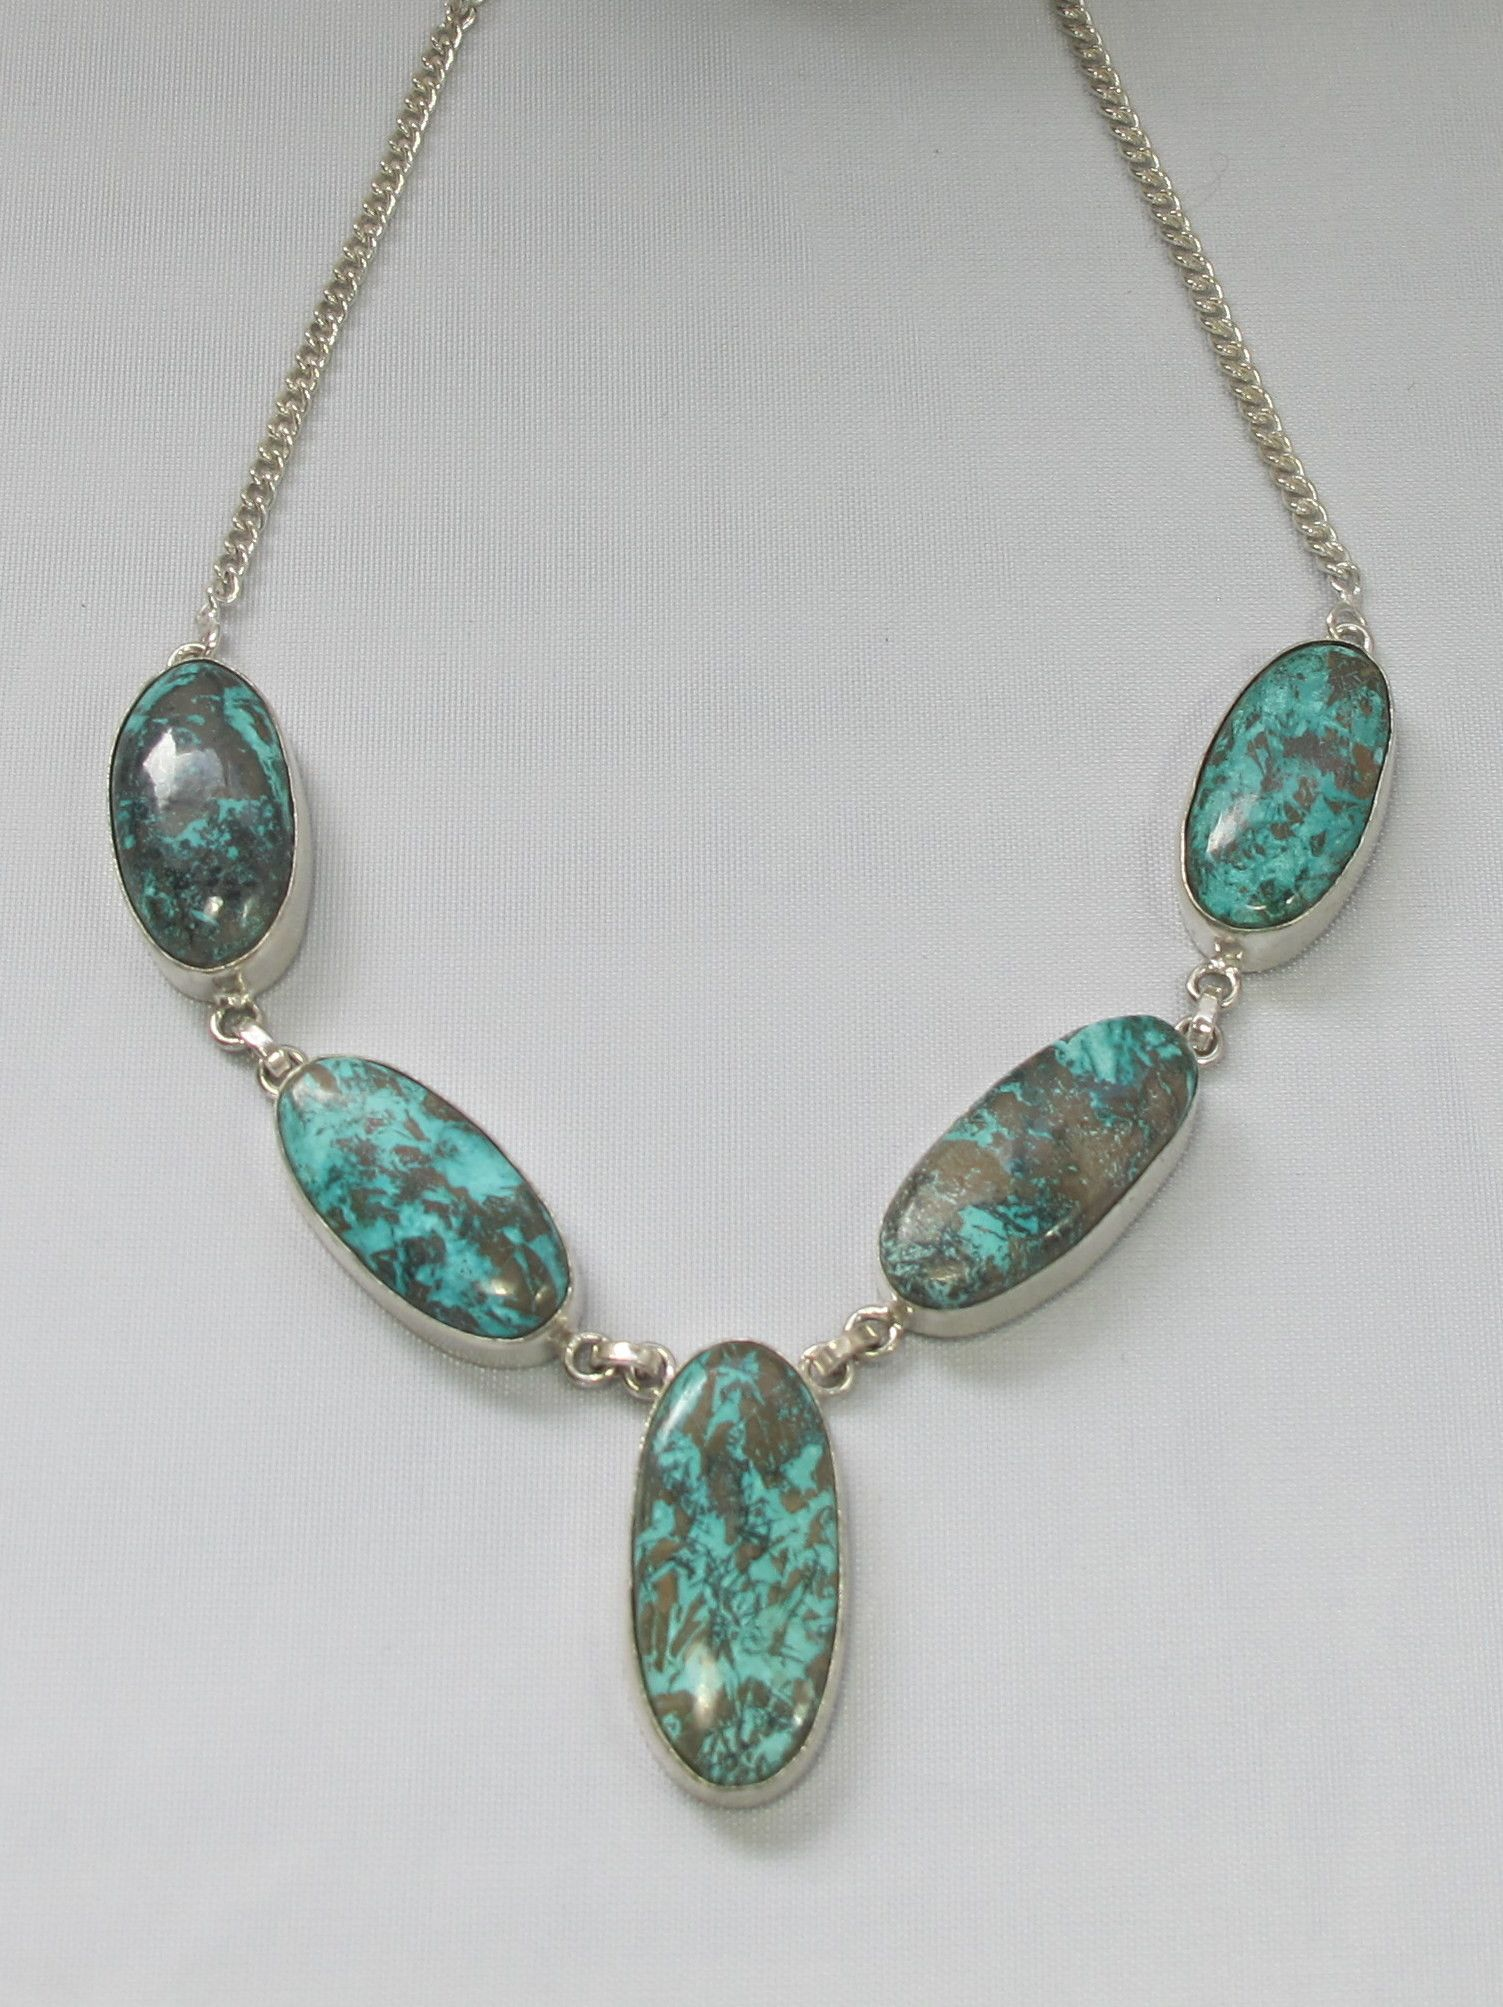 """Five intricate polished cabachon Chrysicolla gemstones adorn this necklace, set in 925 sterling silver and sterling overlay. Matching bracelet available separately. Length: 19"""" Lobster claw clasp. Lar"""